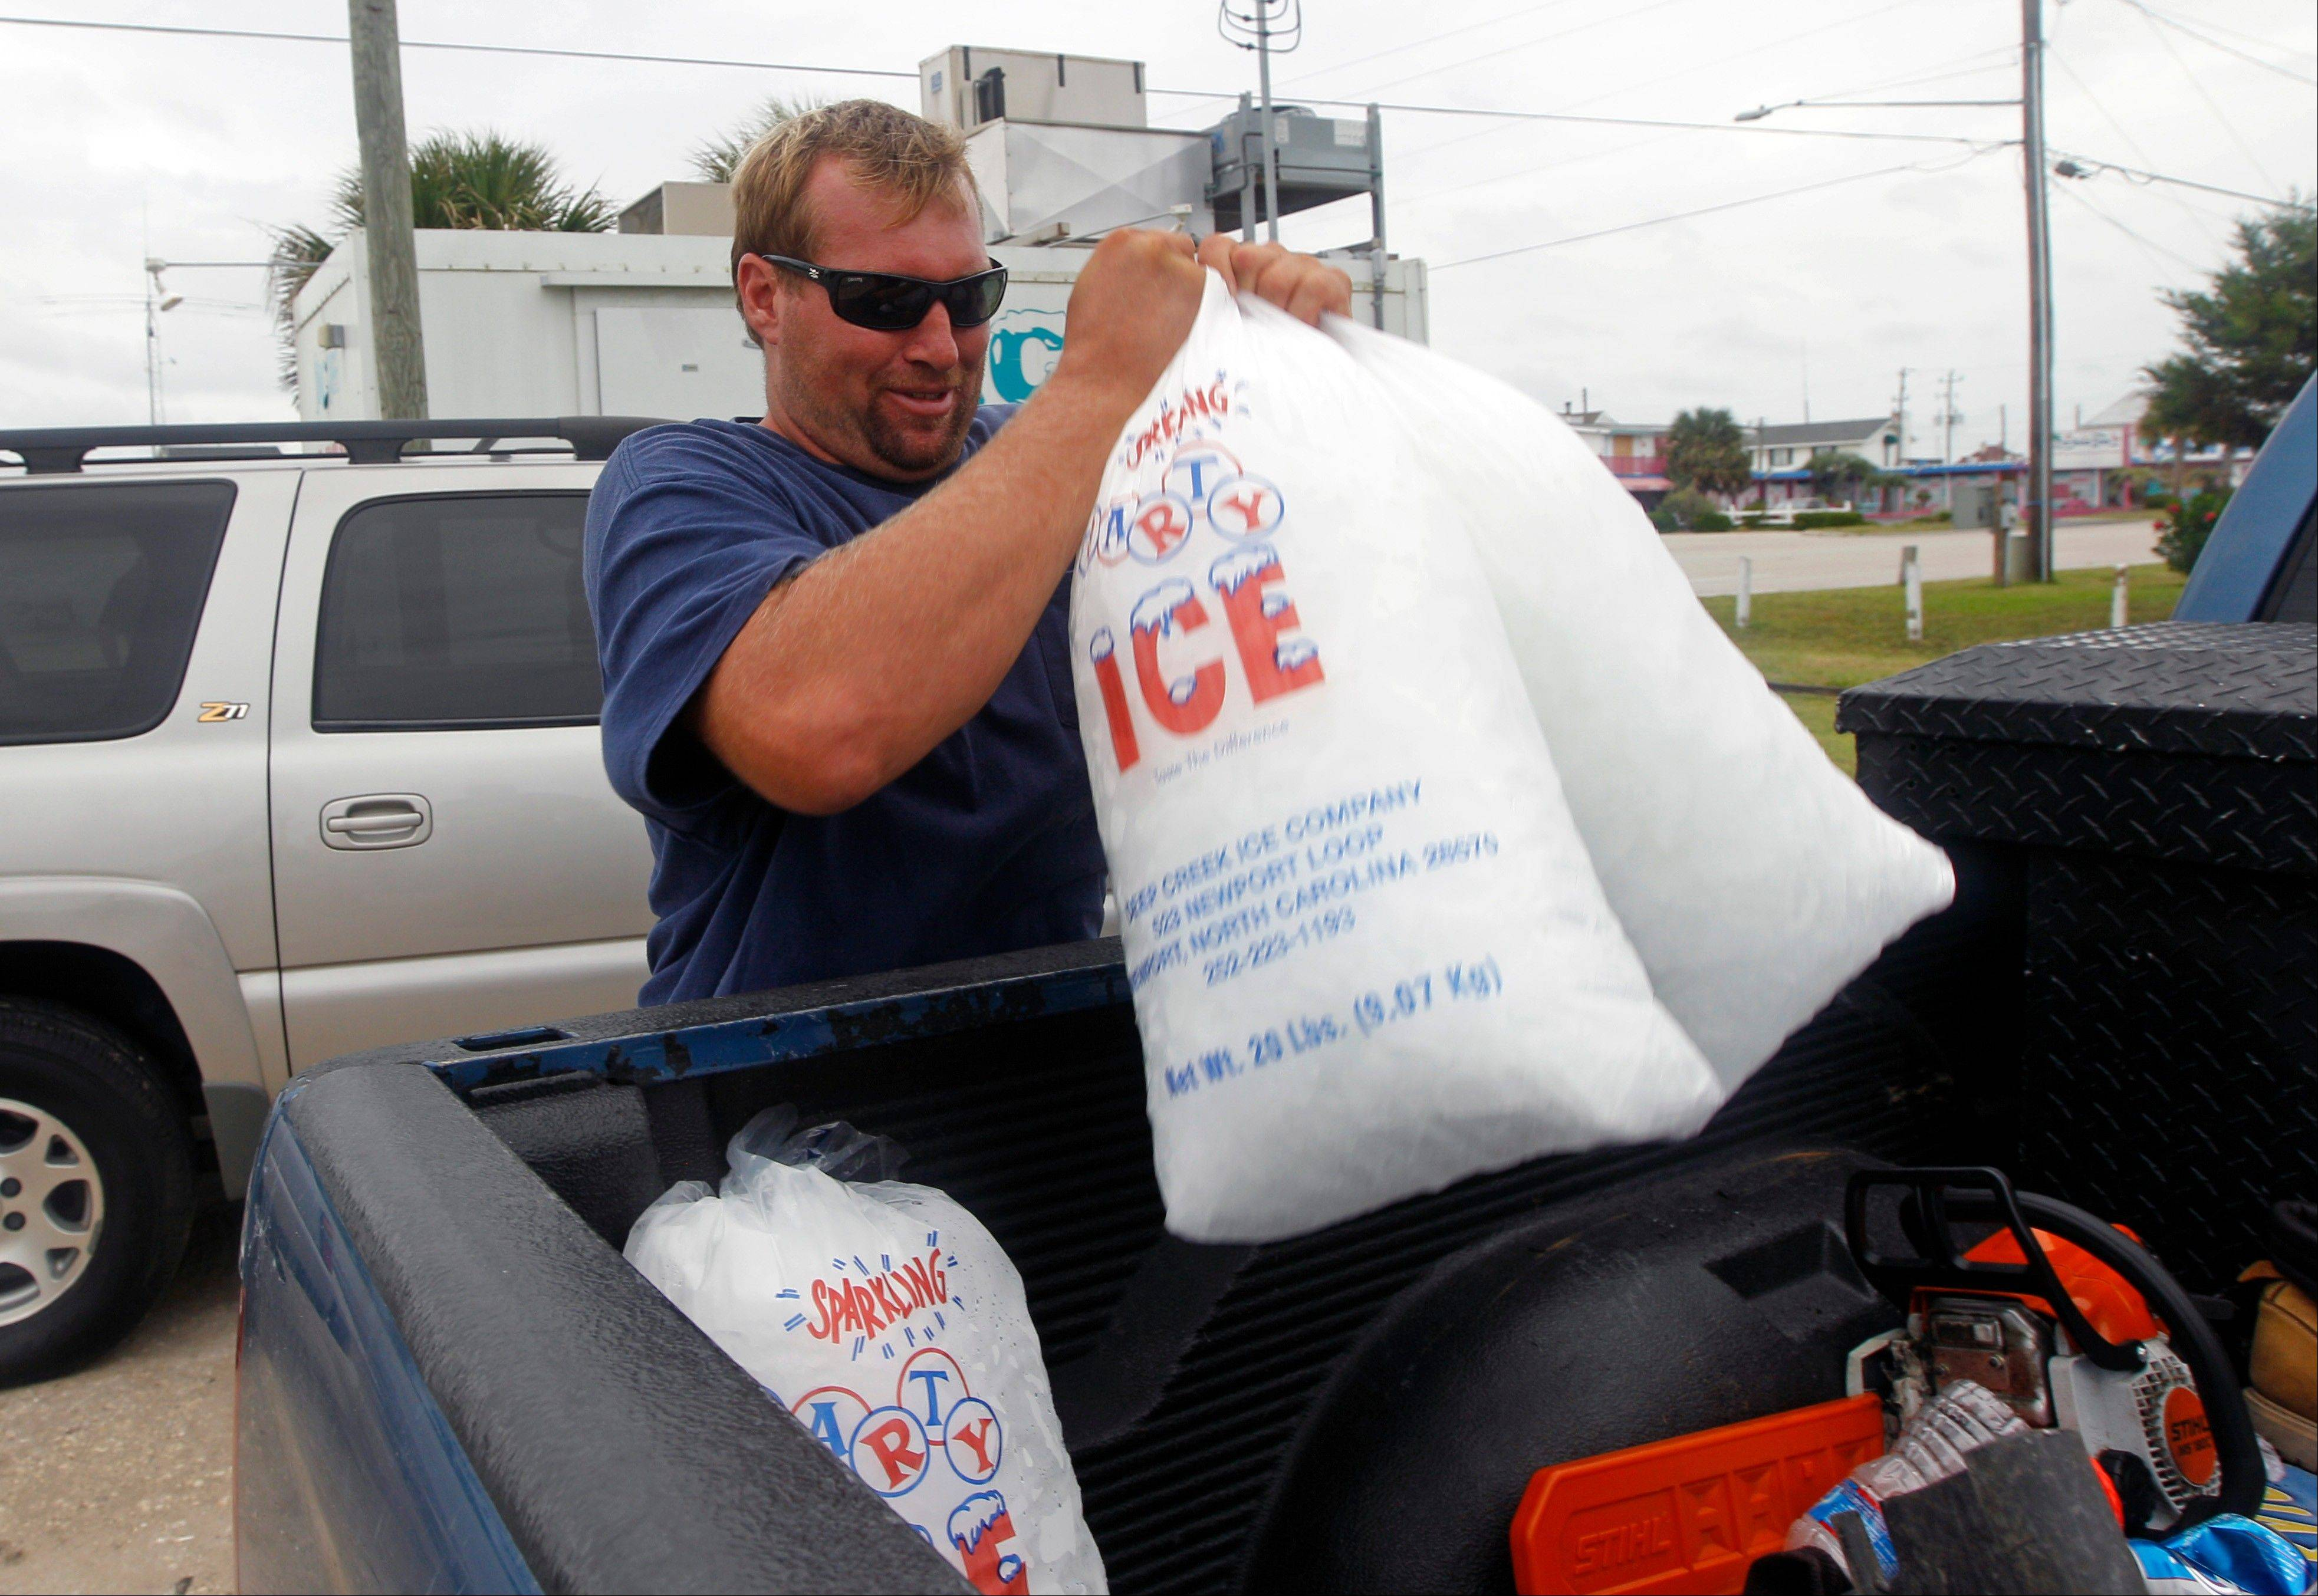 Mike Small, of Morehead City, N.C., loads bags of ice into his truck in Atlantic Beach, N.C., Friday, Aug. 26, 2011 as Hurricane Irene heads toward the North Carolina coast. Hurricane warnings remained in effect from North Carolina to New Jersey. Hurricane watches were in effect even farther north and included Long Island, Martha's Vineyard and Nantucket, Mass.